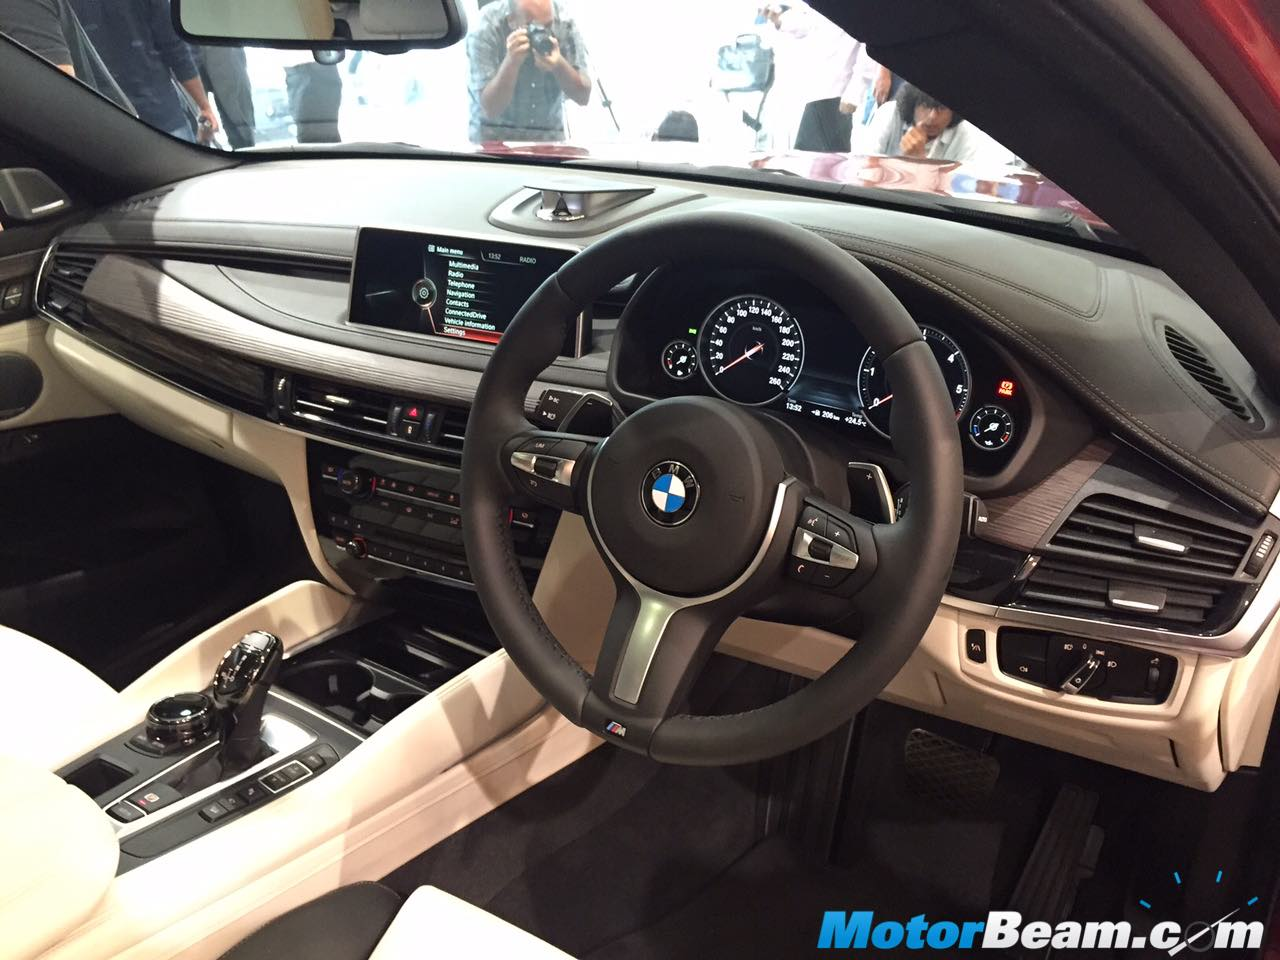 2015 Bmw X6 Launched In India Priced At Rs 1 15 Crores